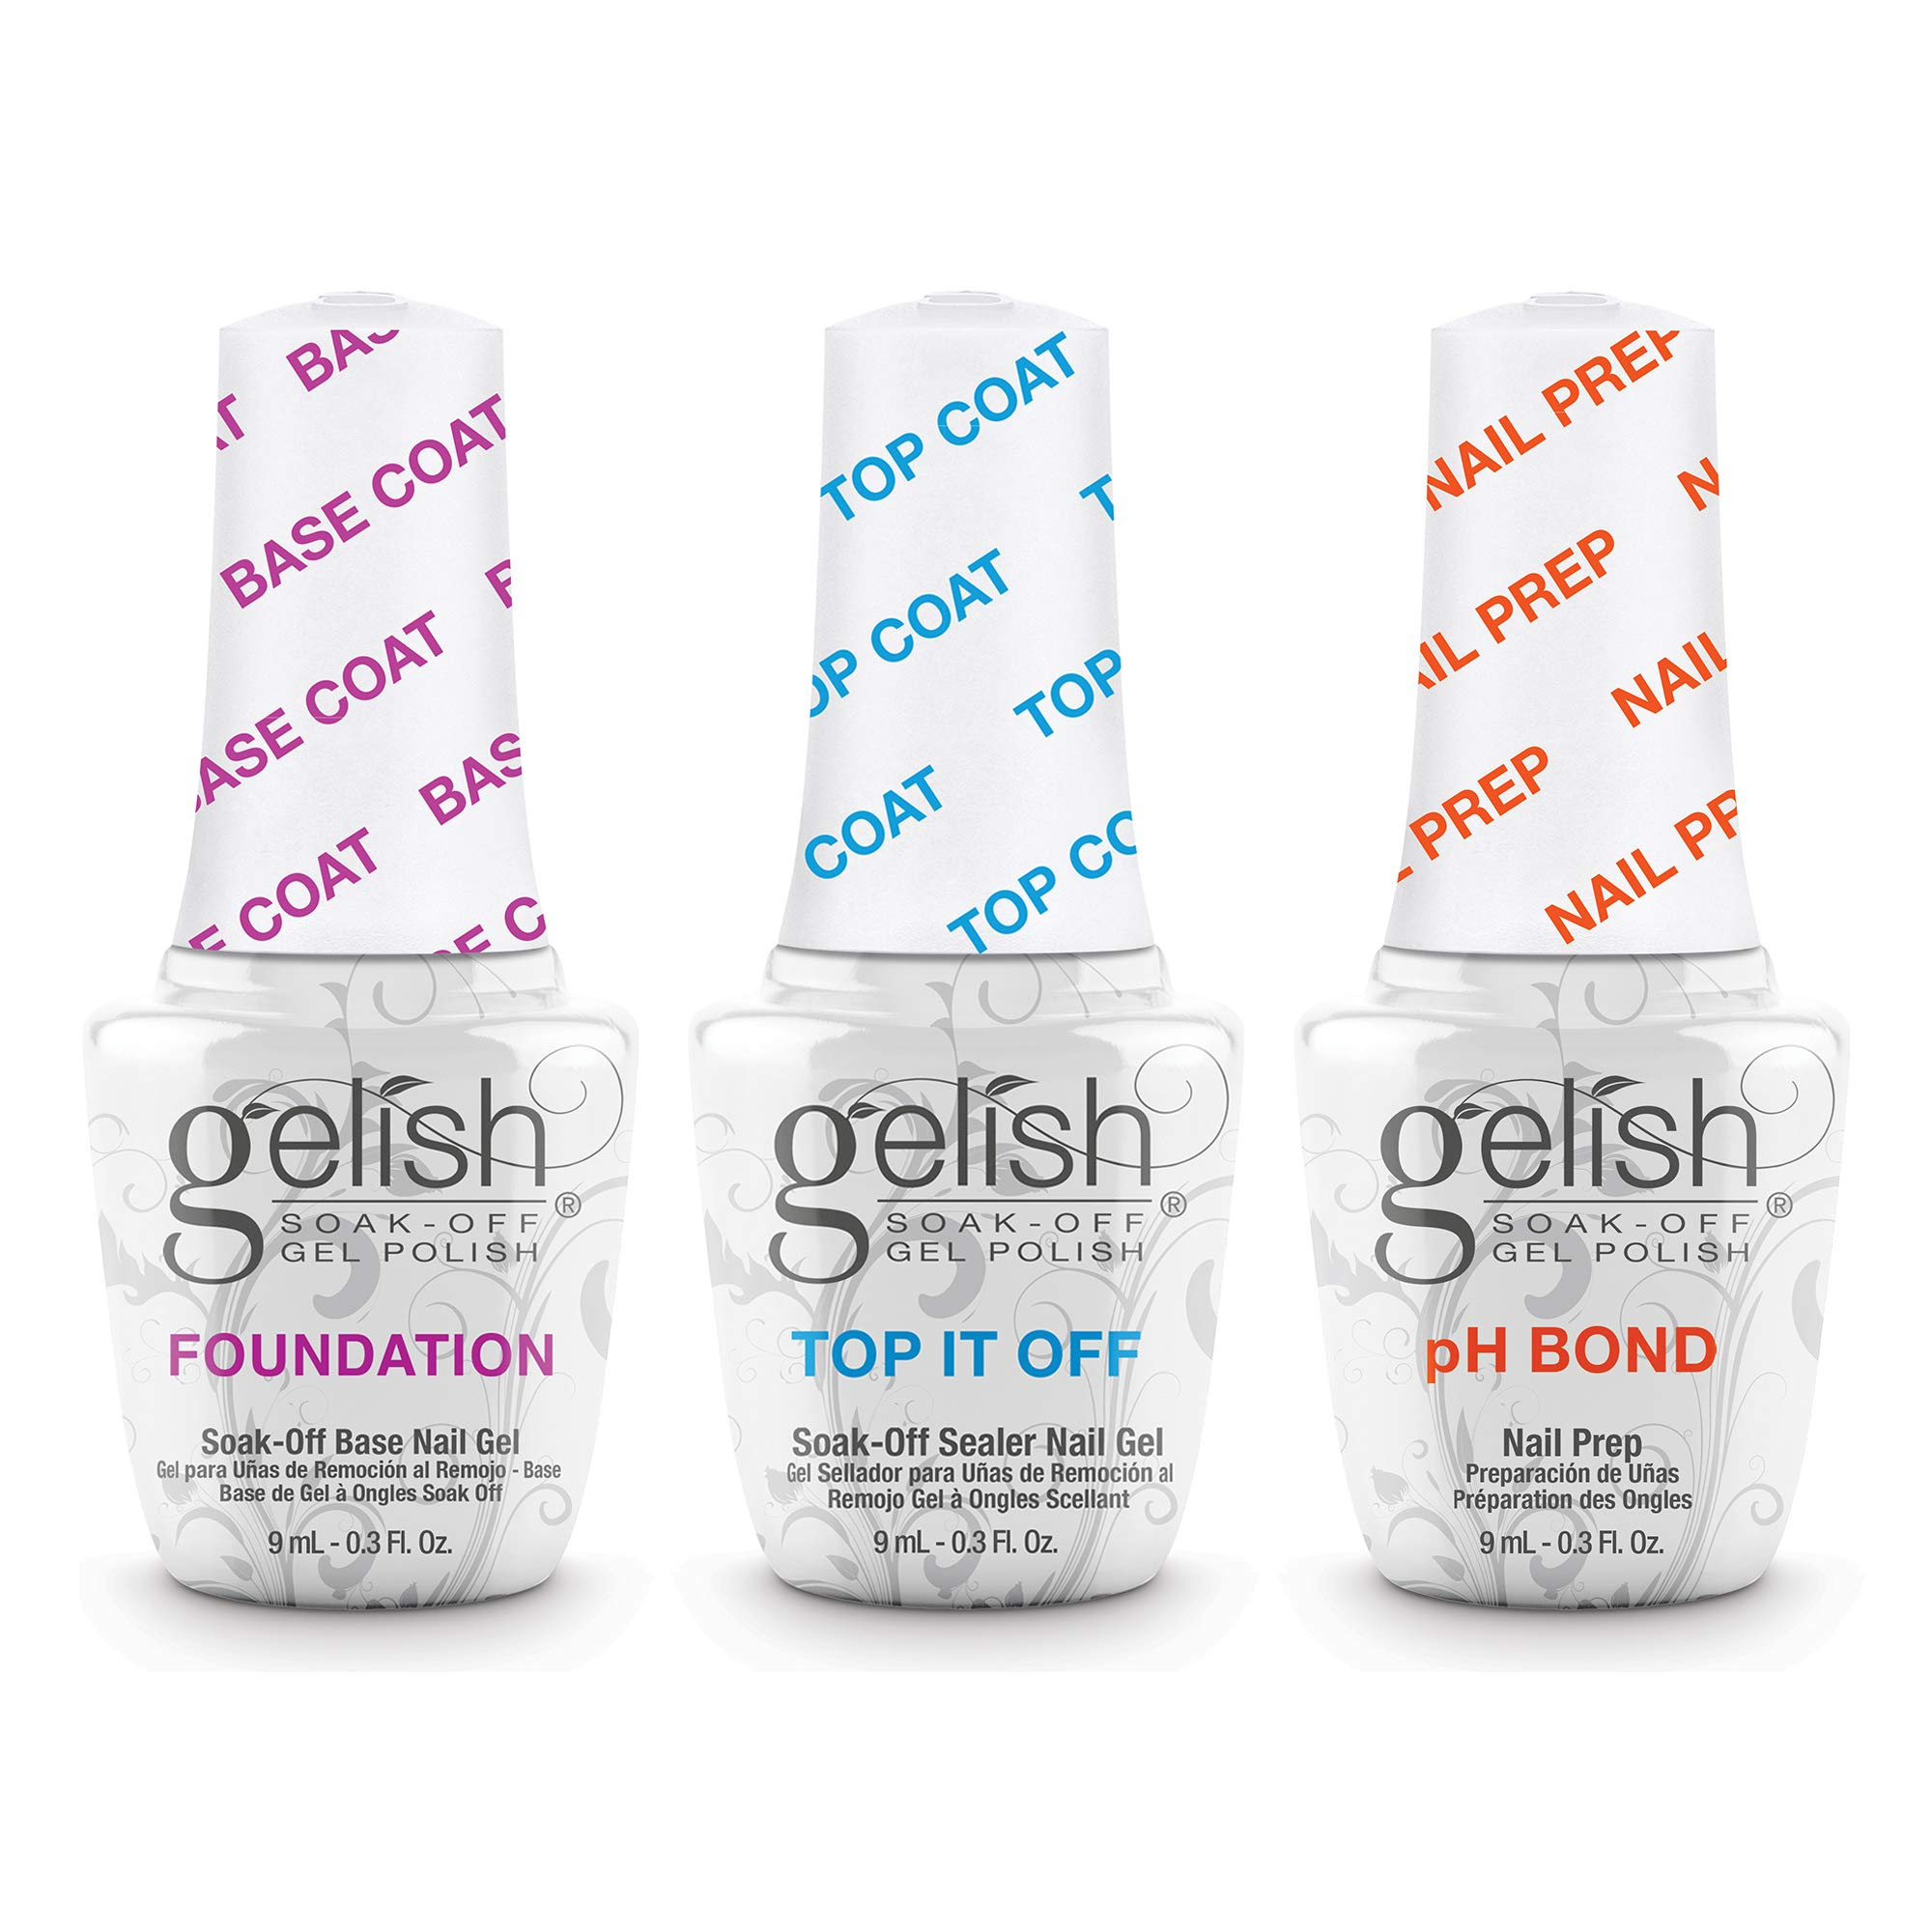 Gelish Terrific Trio Essentials 15 mL Basix Care Soak Off Manicure Gel Nail Polish Kit with Foundation, pH Bond and Top It Off Gel